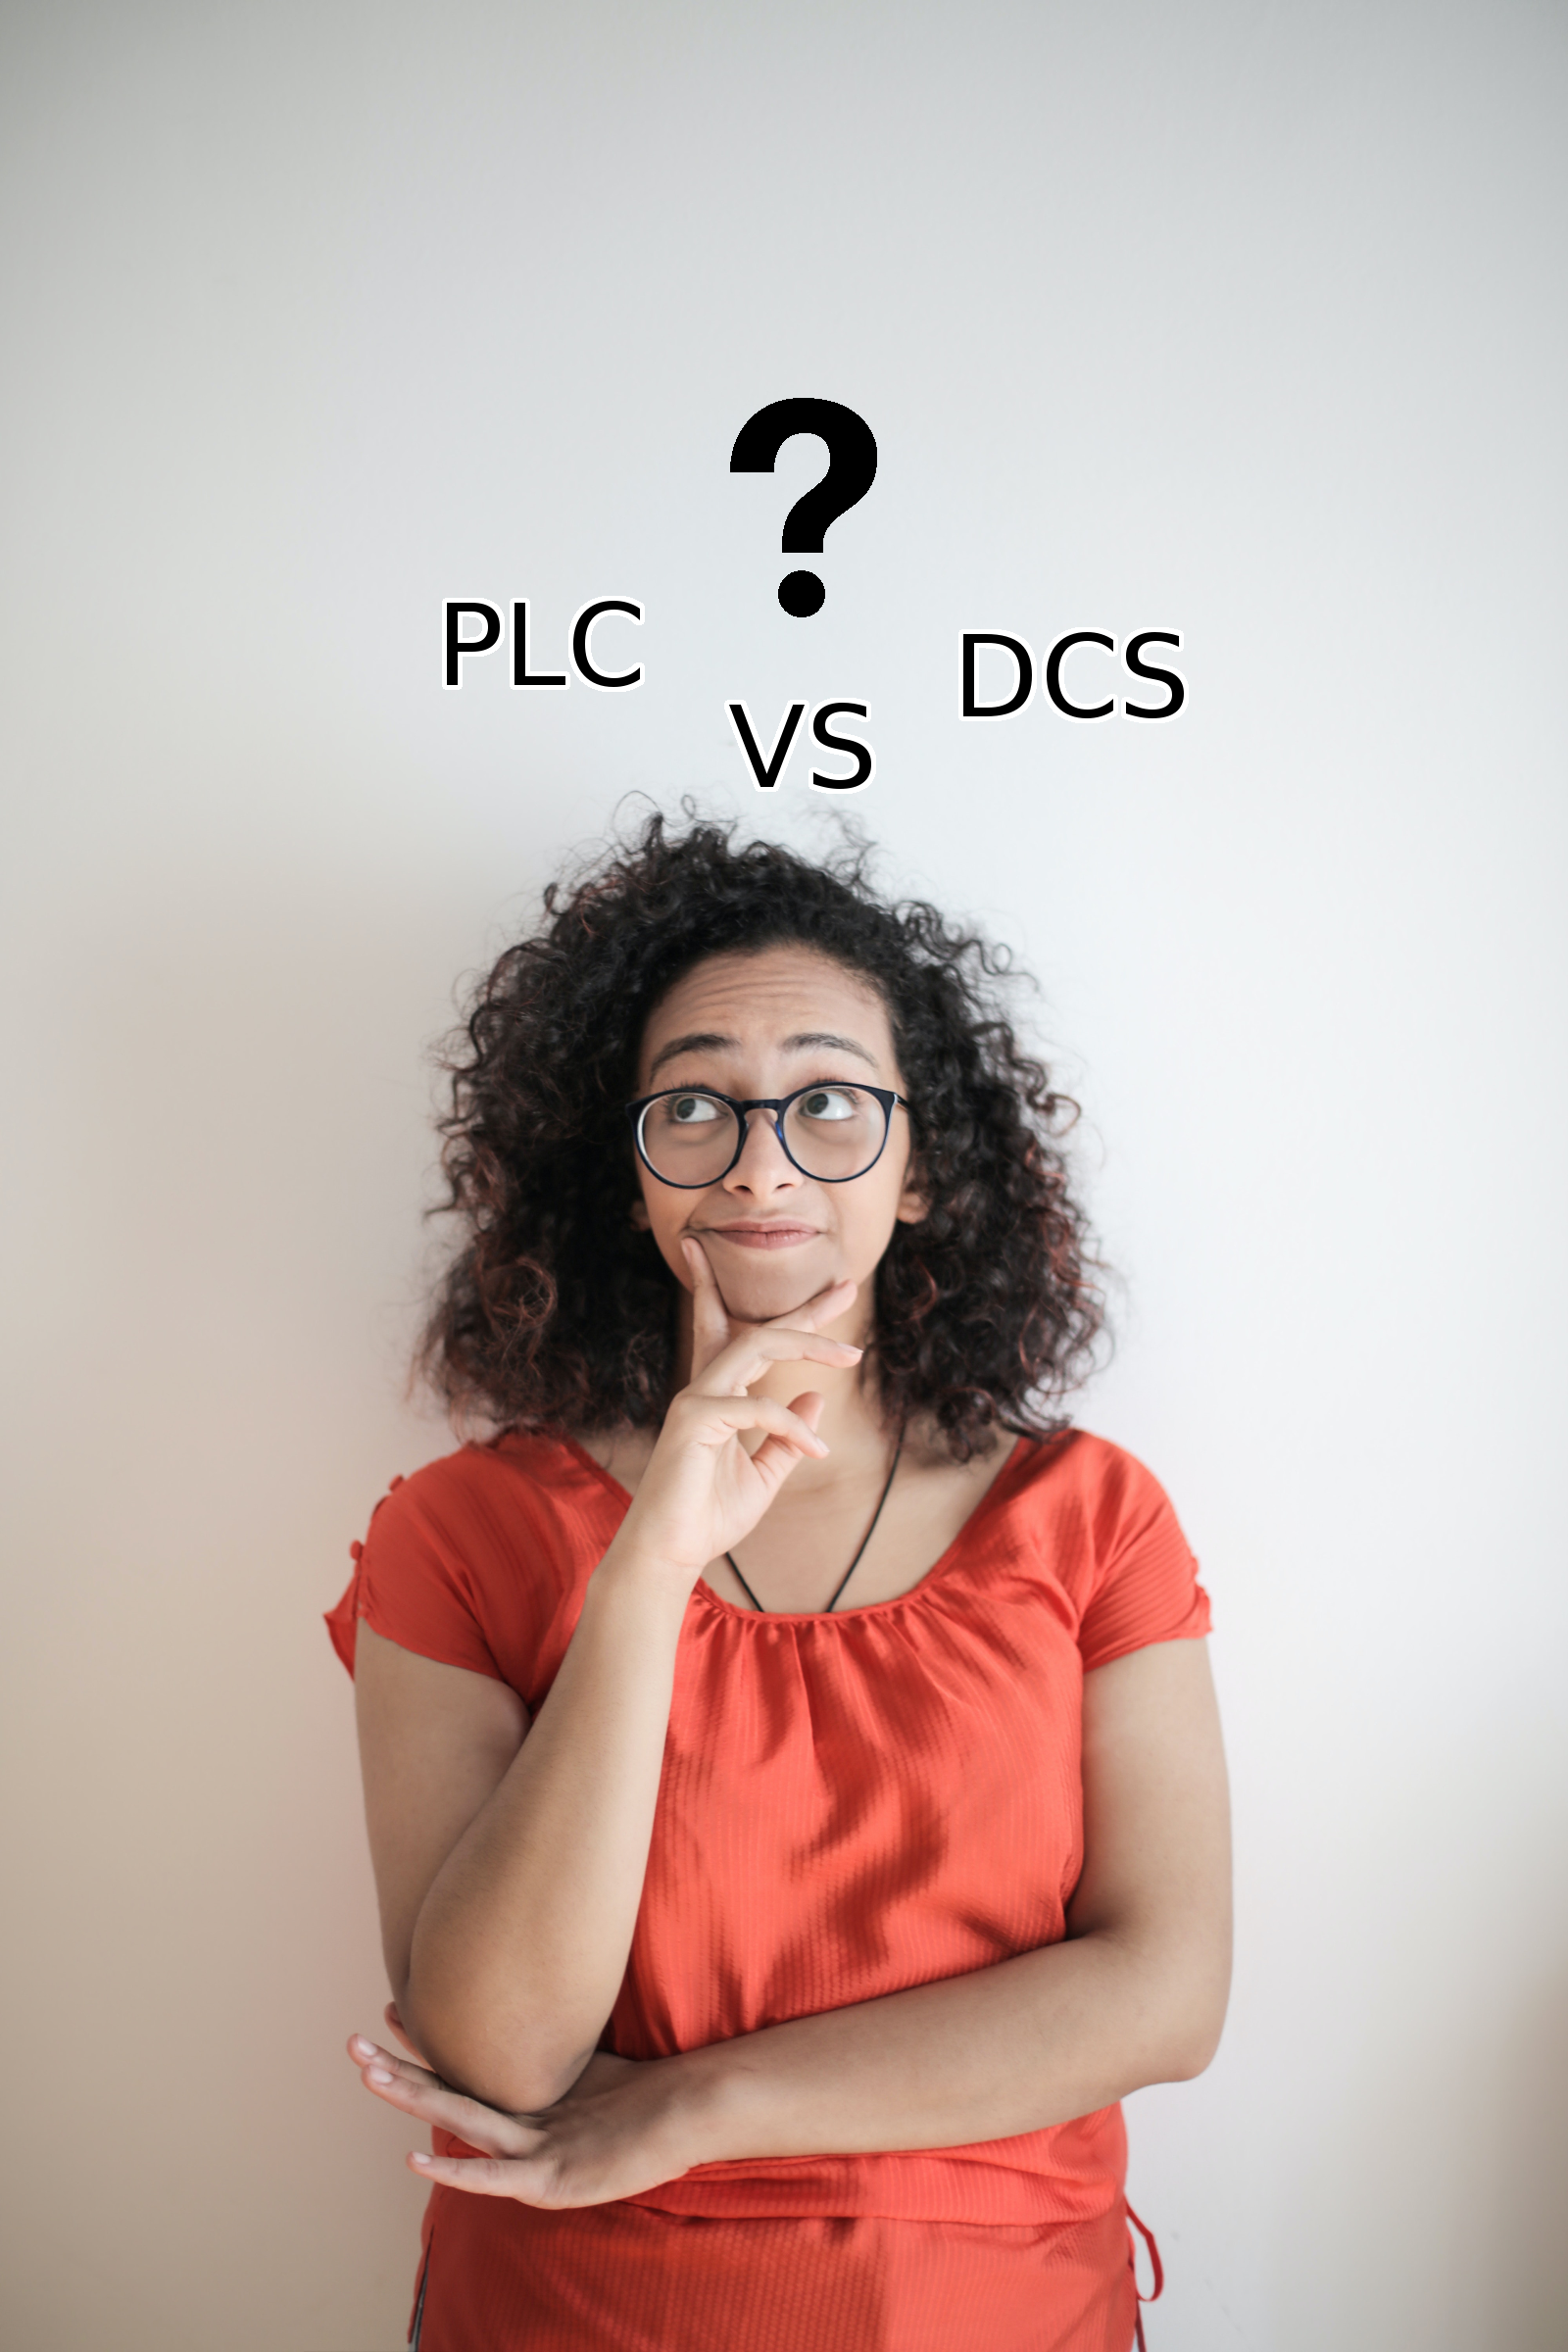 PLC vs DCS: How to Choose?